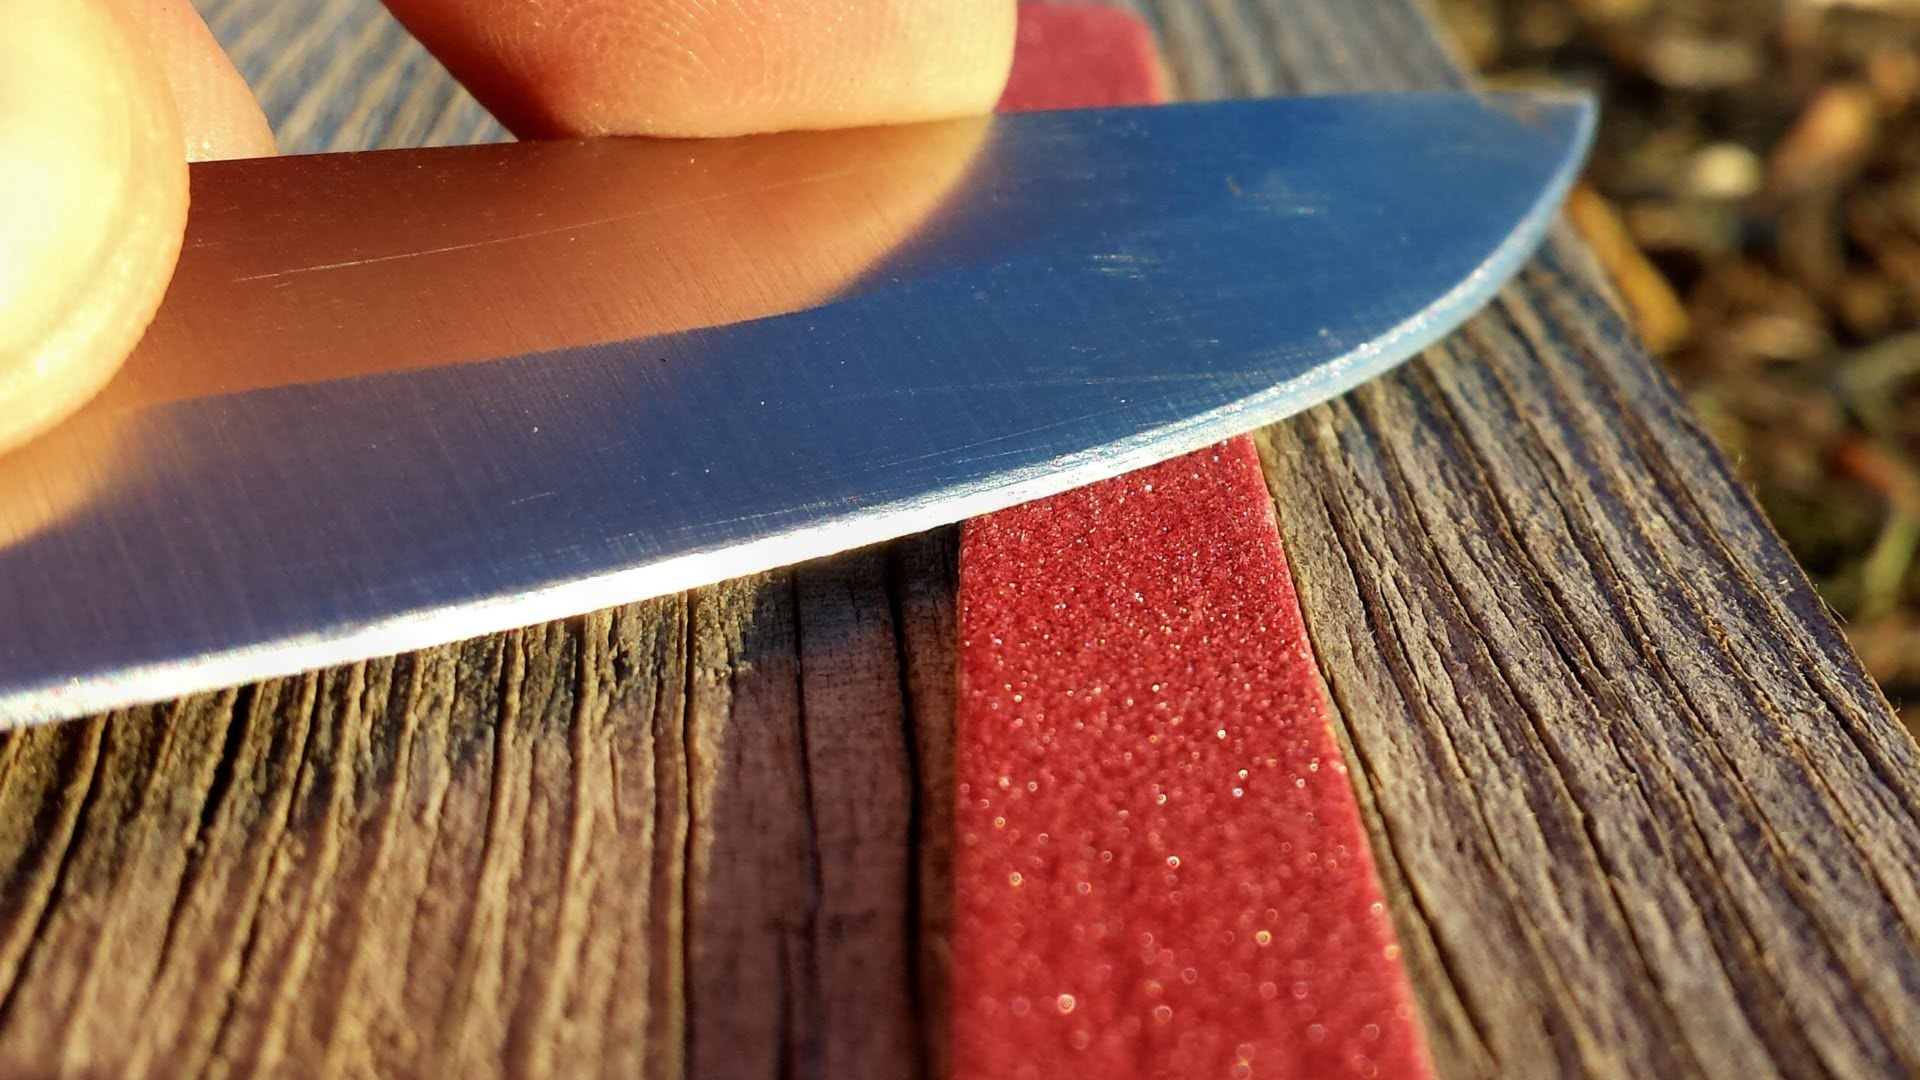 Best Way To Sharpen A Knife – Easy To Follow Knife Sharpening Guide